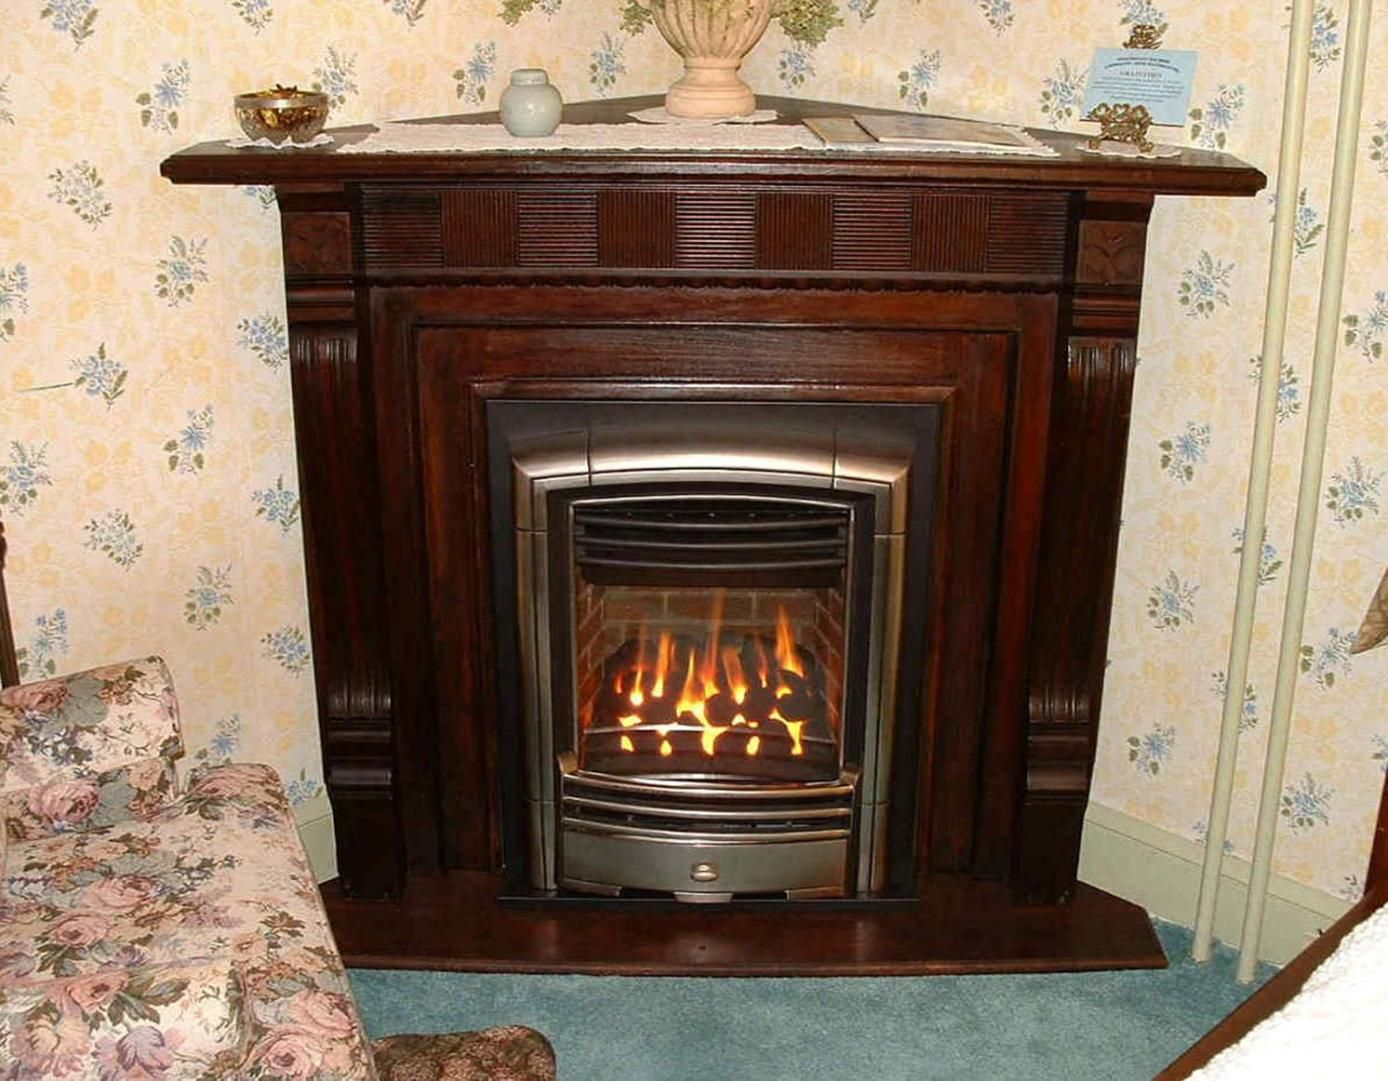 58 rustic natural gas fireplace insert with blower design